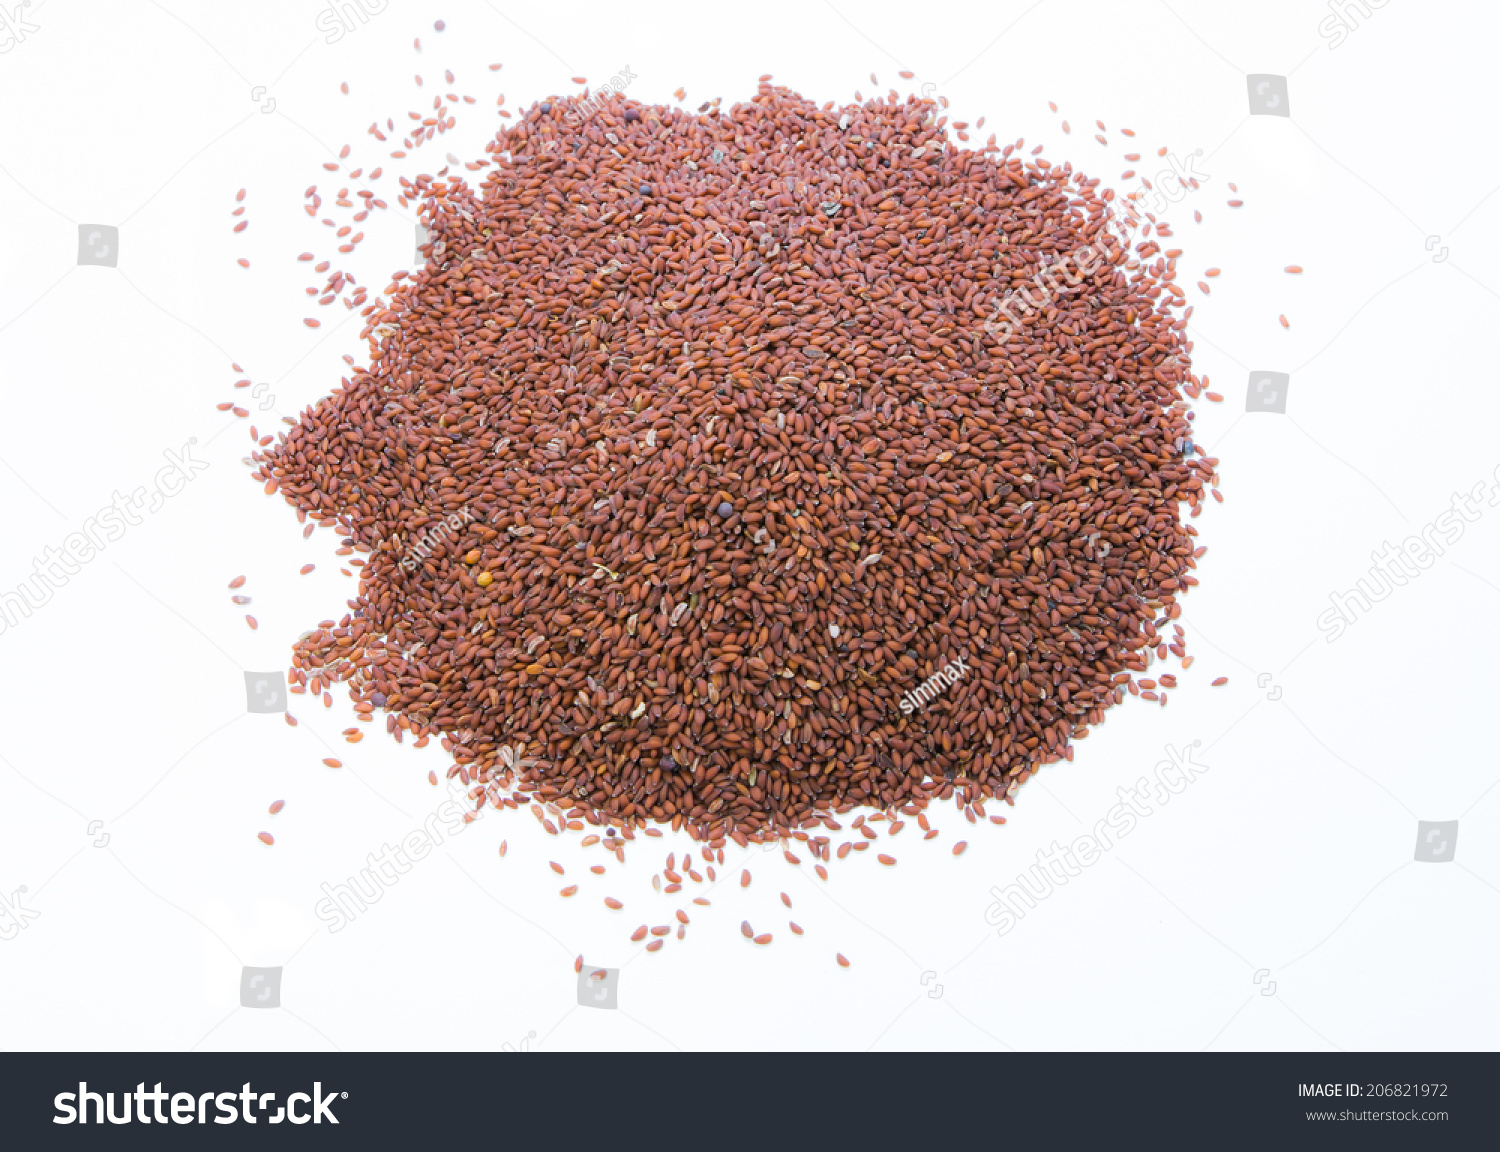 Garden Cress Seed On White Background Stock Photo (Royalty Free ...